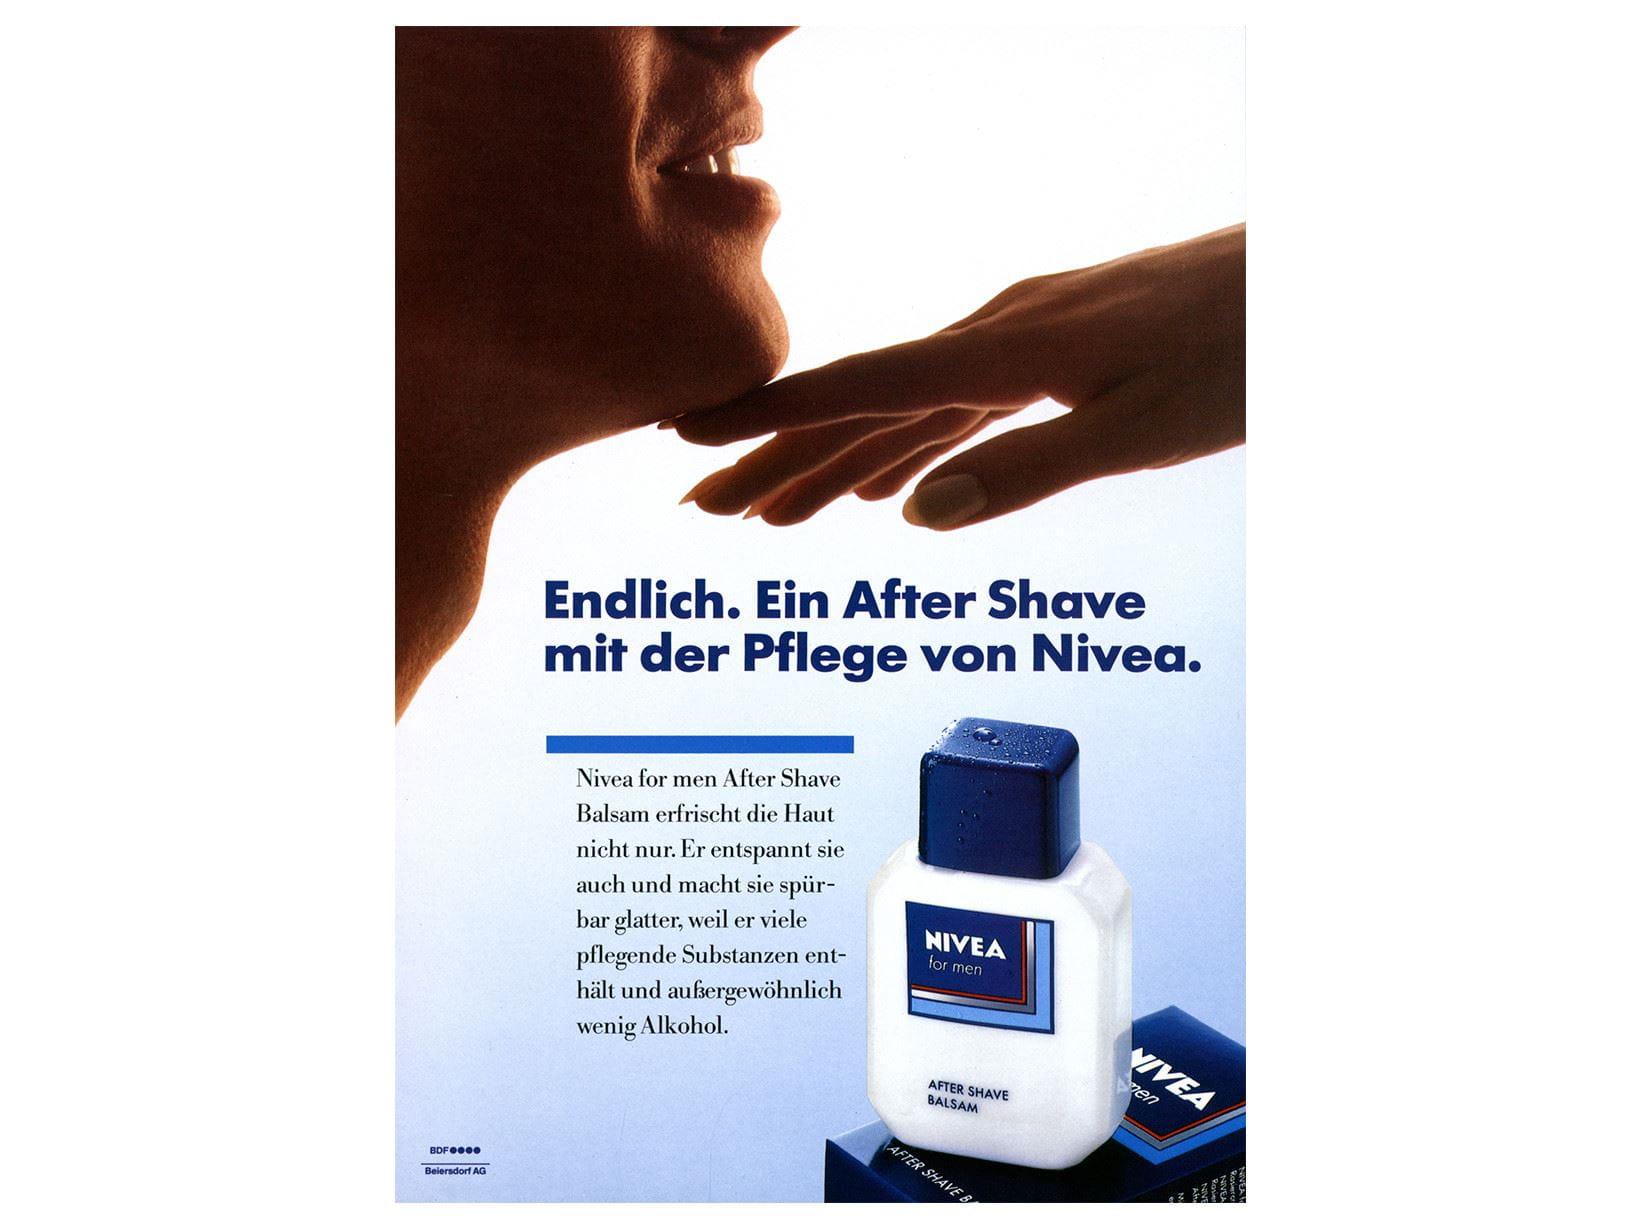 NIVEA FOR MEN Werbeanzeige After Shave 1986